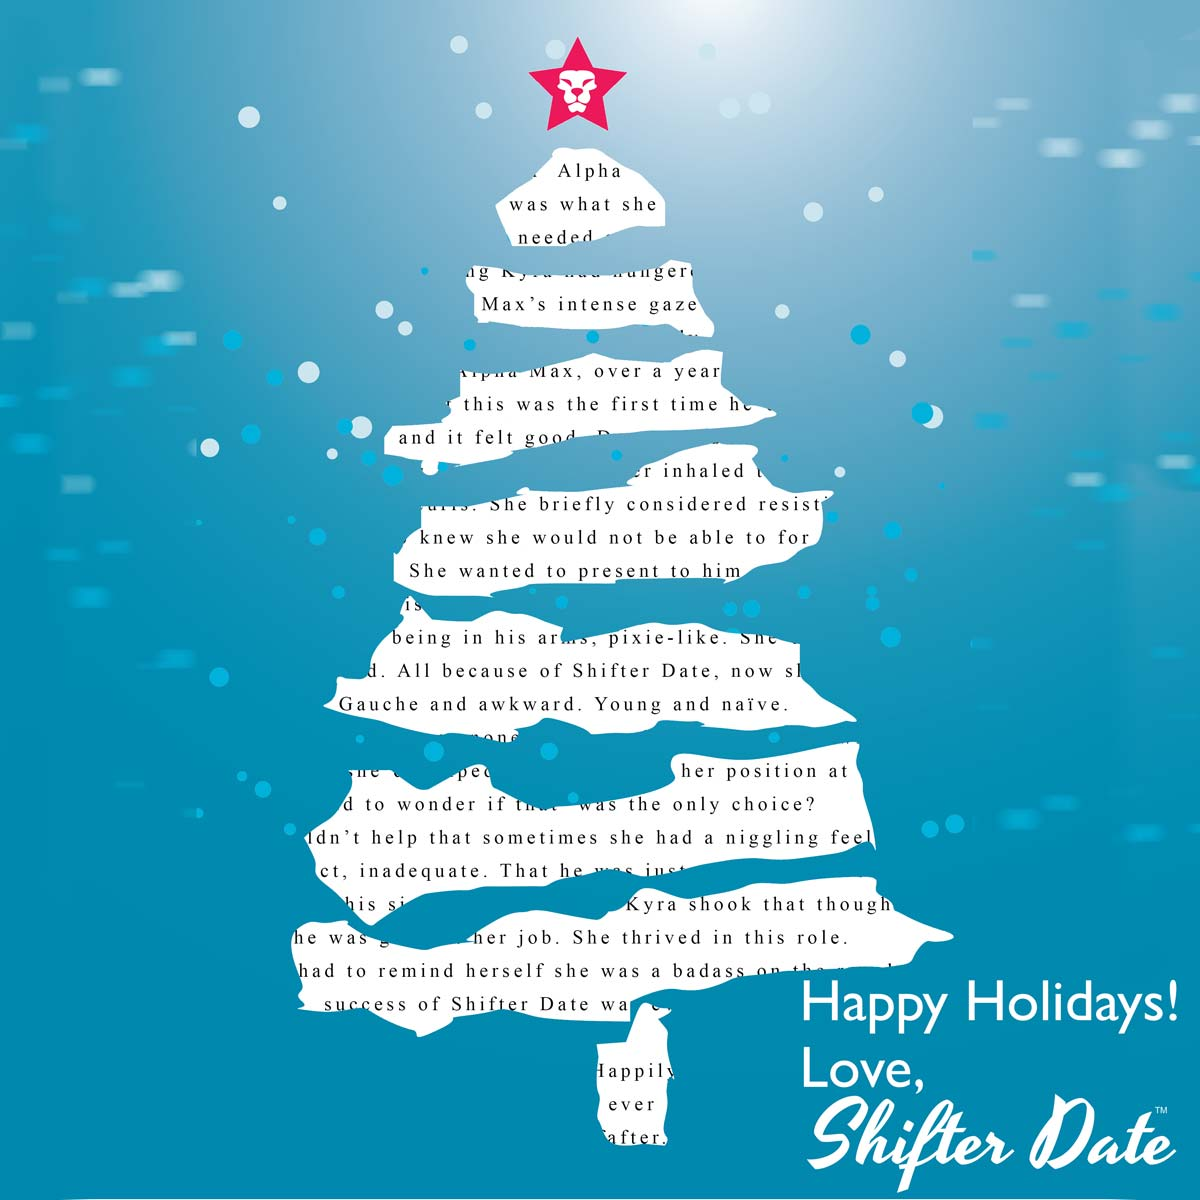 Happy Holidays! Love, Shifter Date